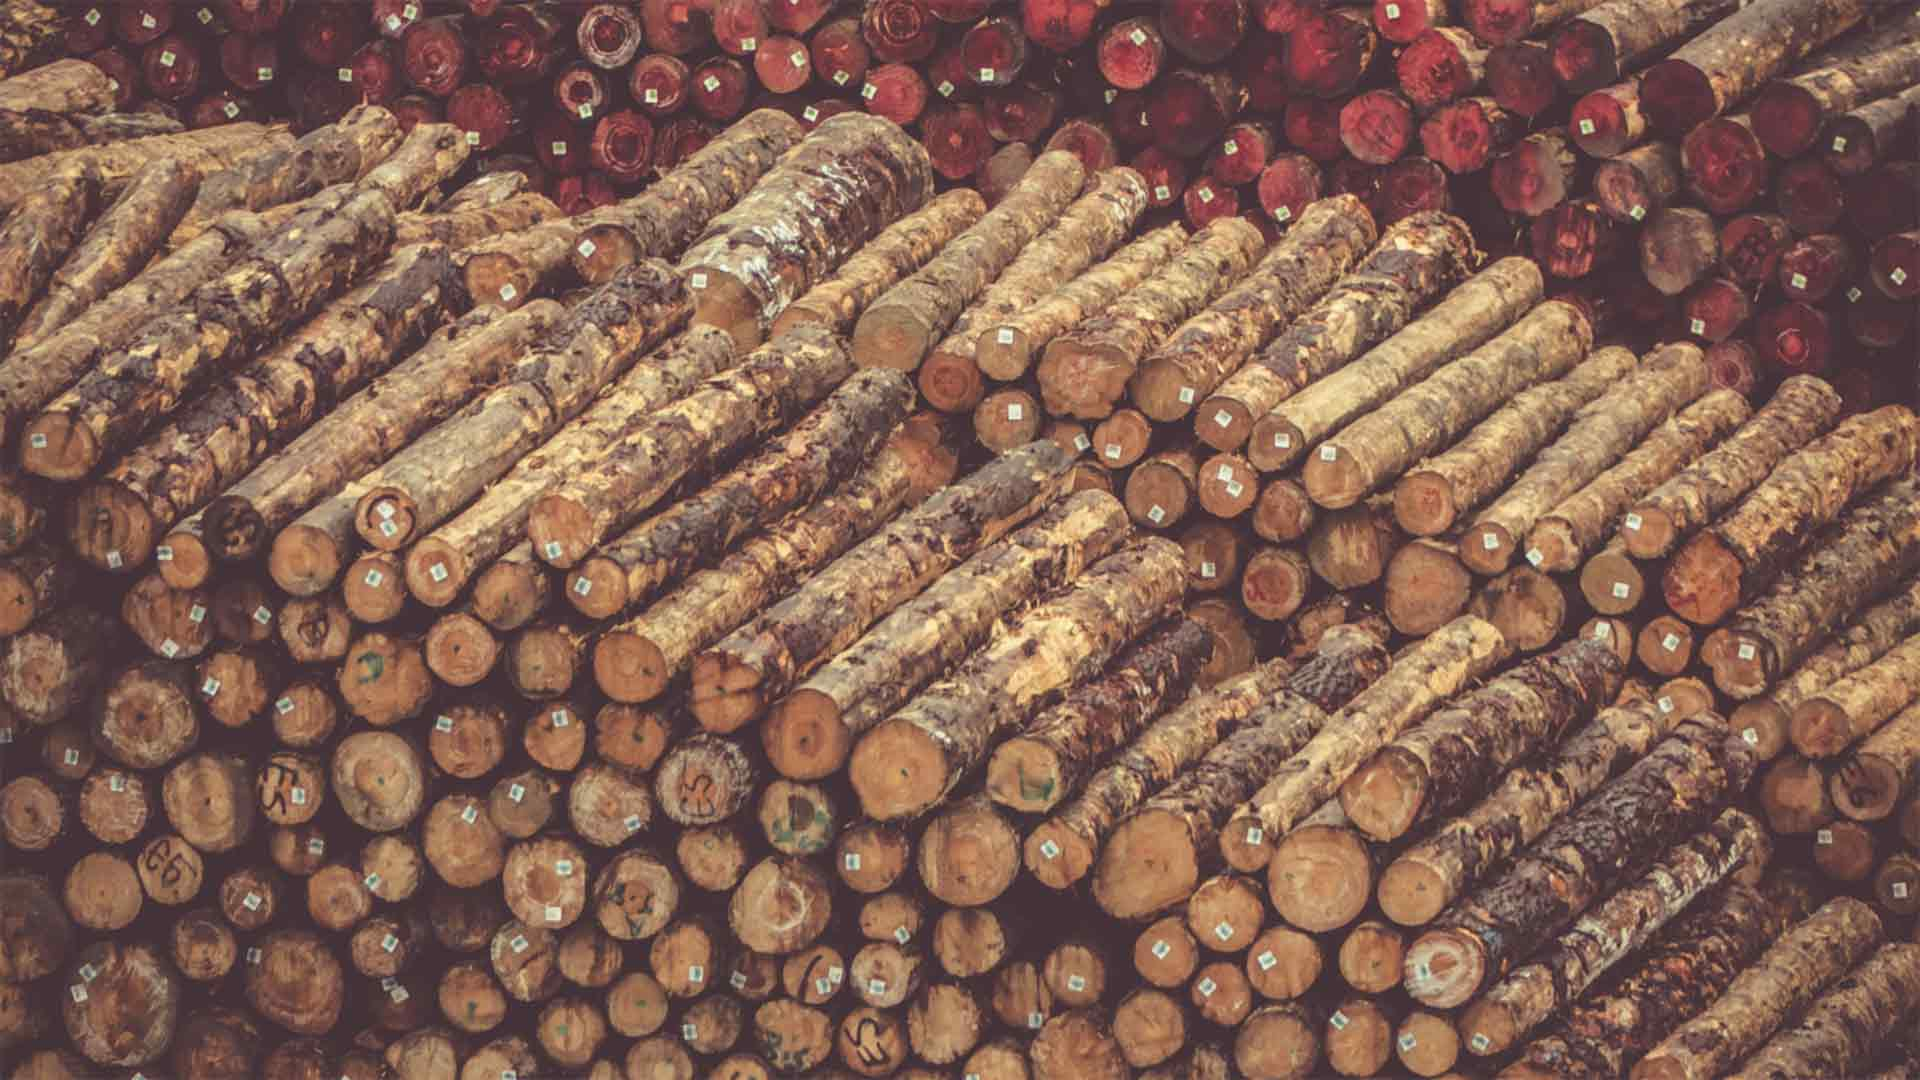 Is Timber Theft Really a Problem?